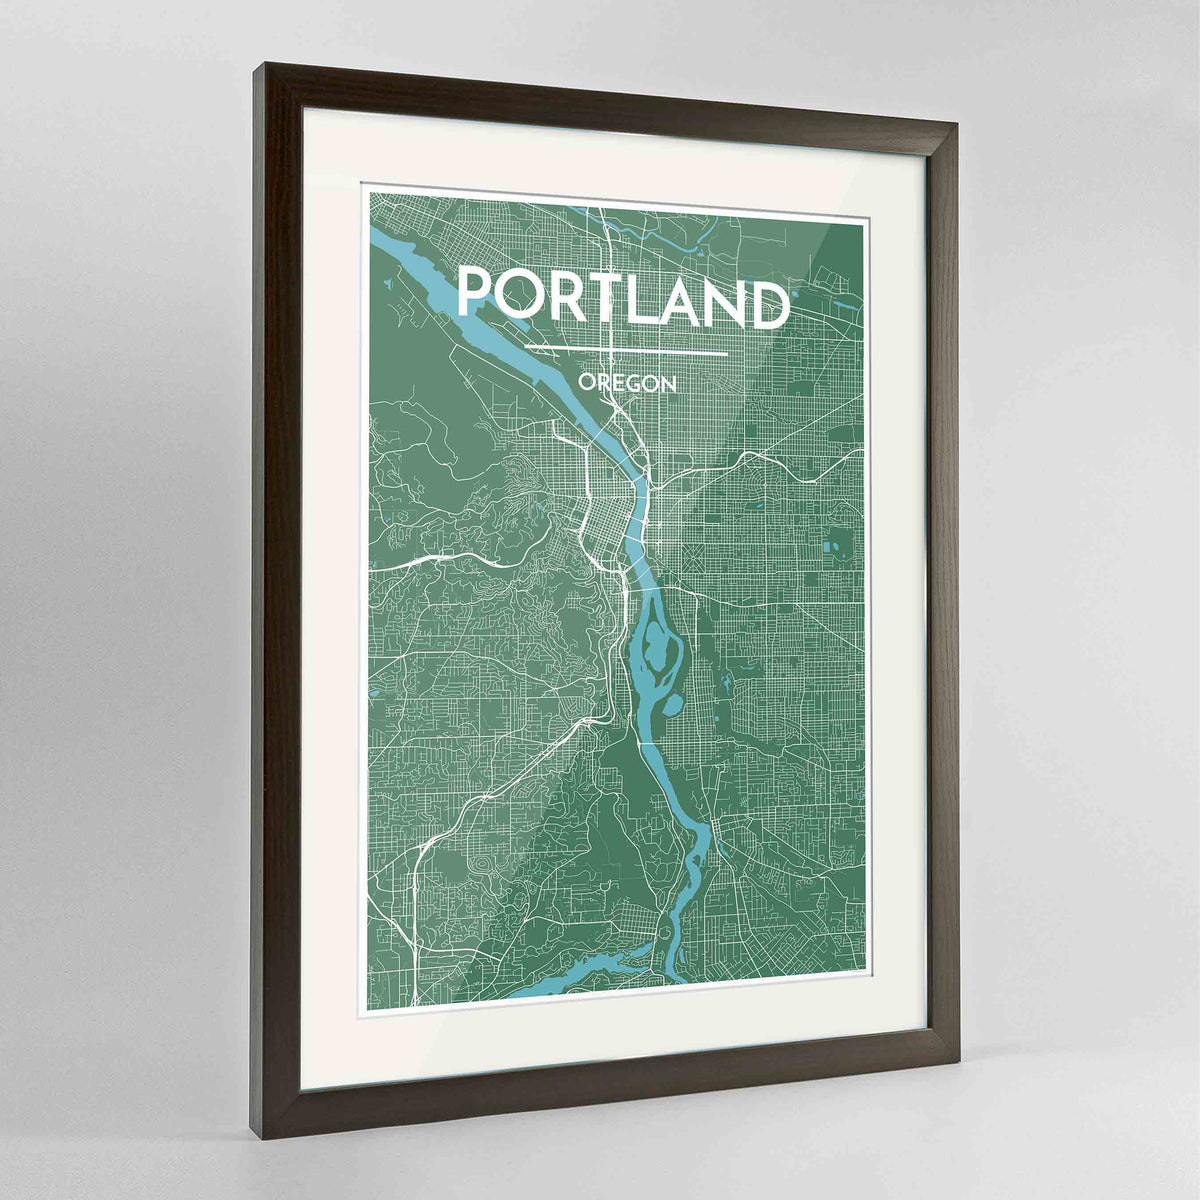 "Framed Portland - Oregon Map Art Print 24x36"" Contemporary Walnut frame Point Two Design Group"